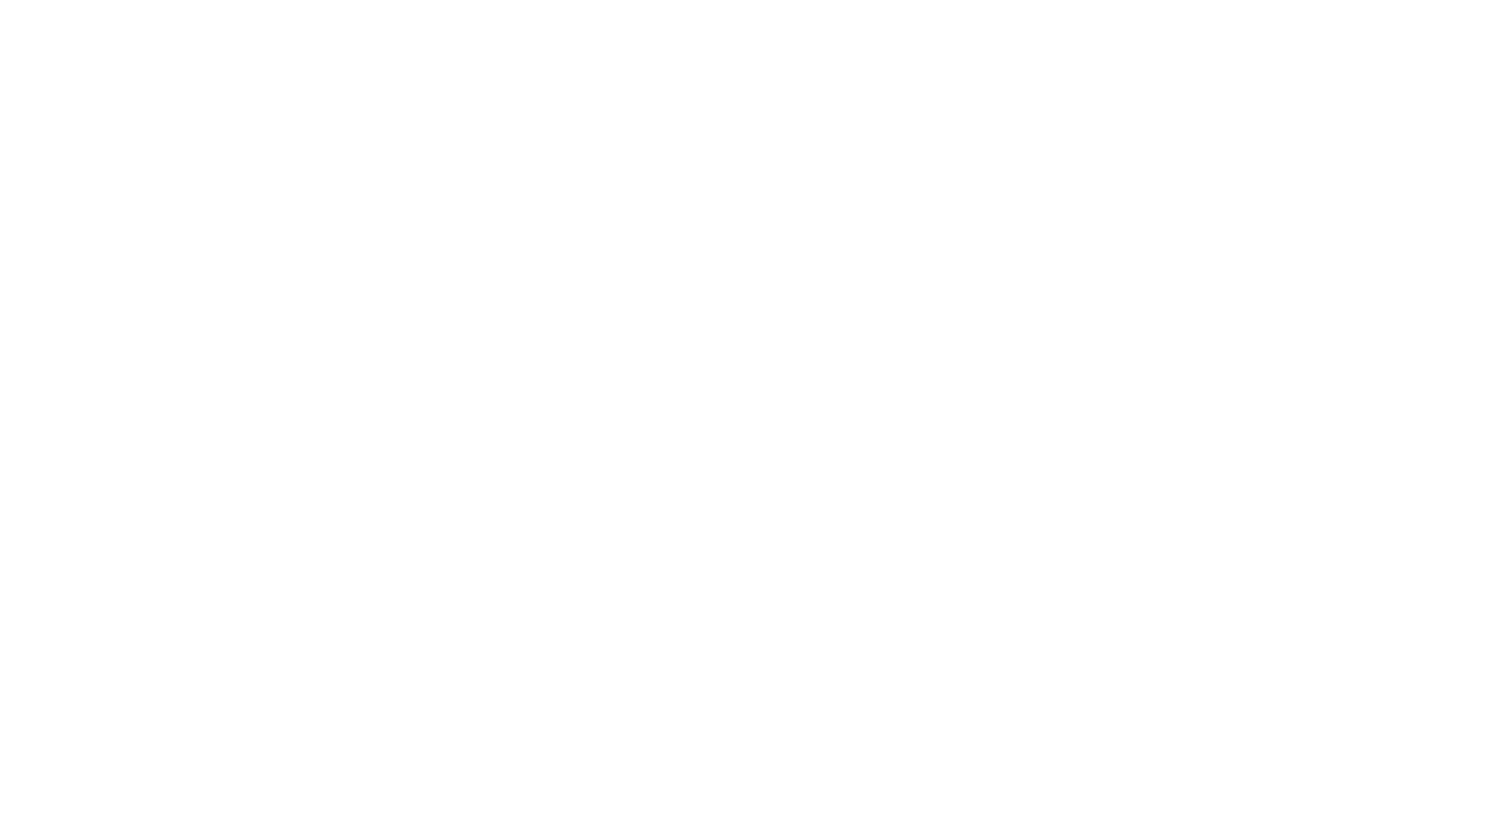 Roma Development Co.